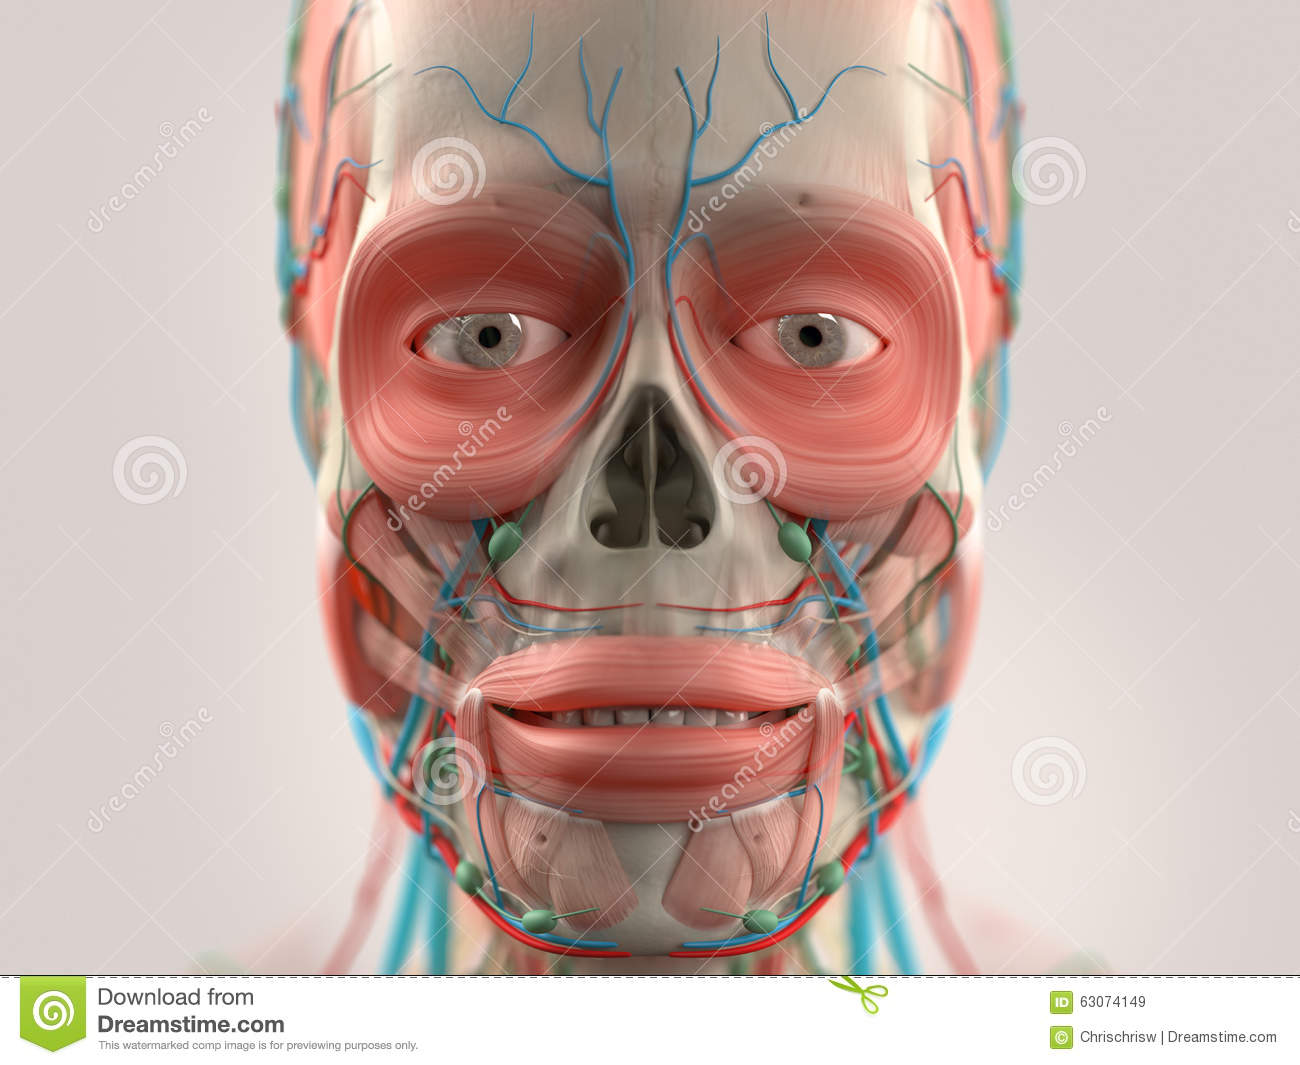 Nose anatomy stock vector. Illustration of cords, laryngopharynx ...